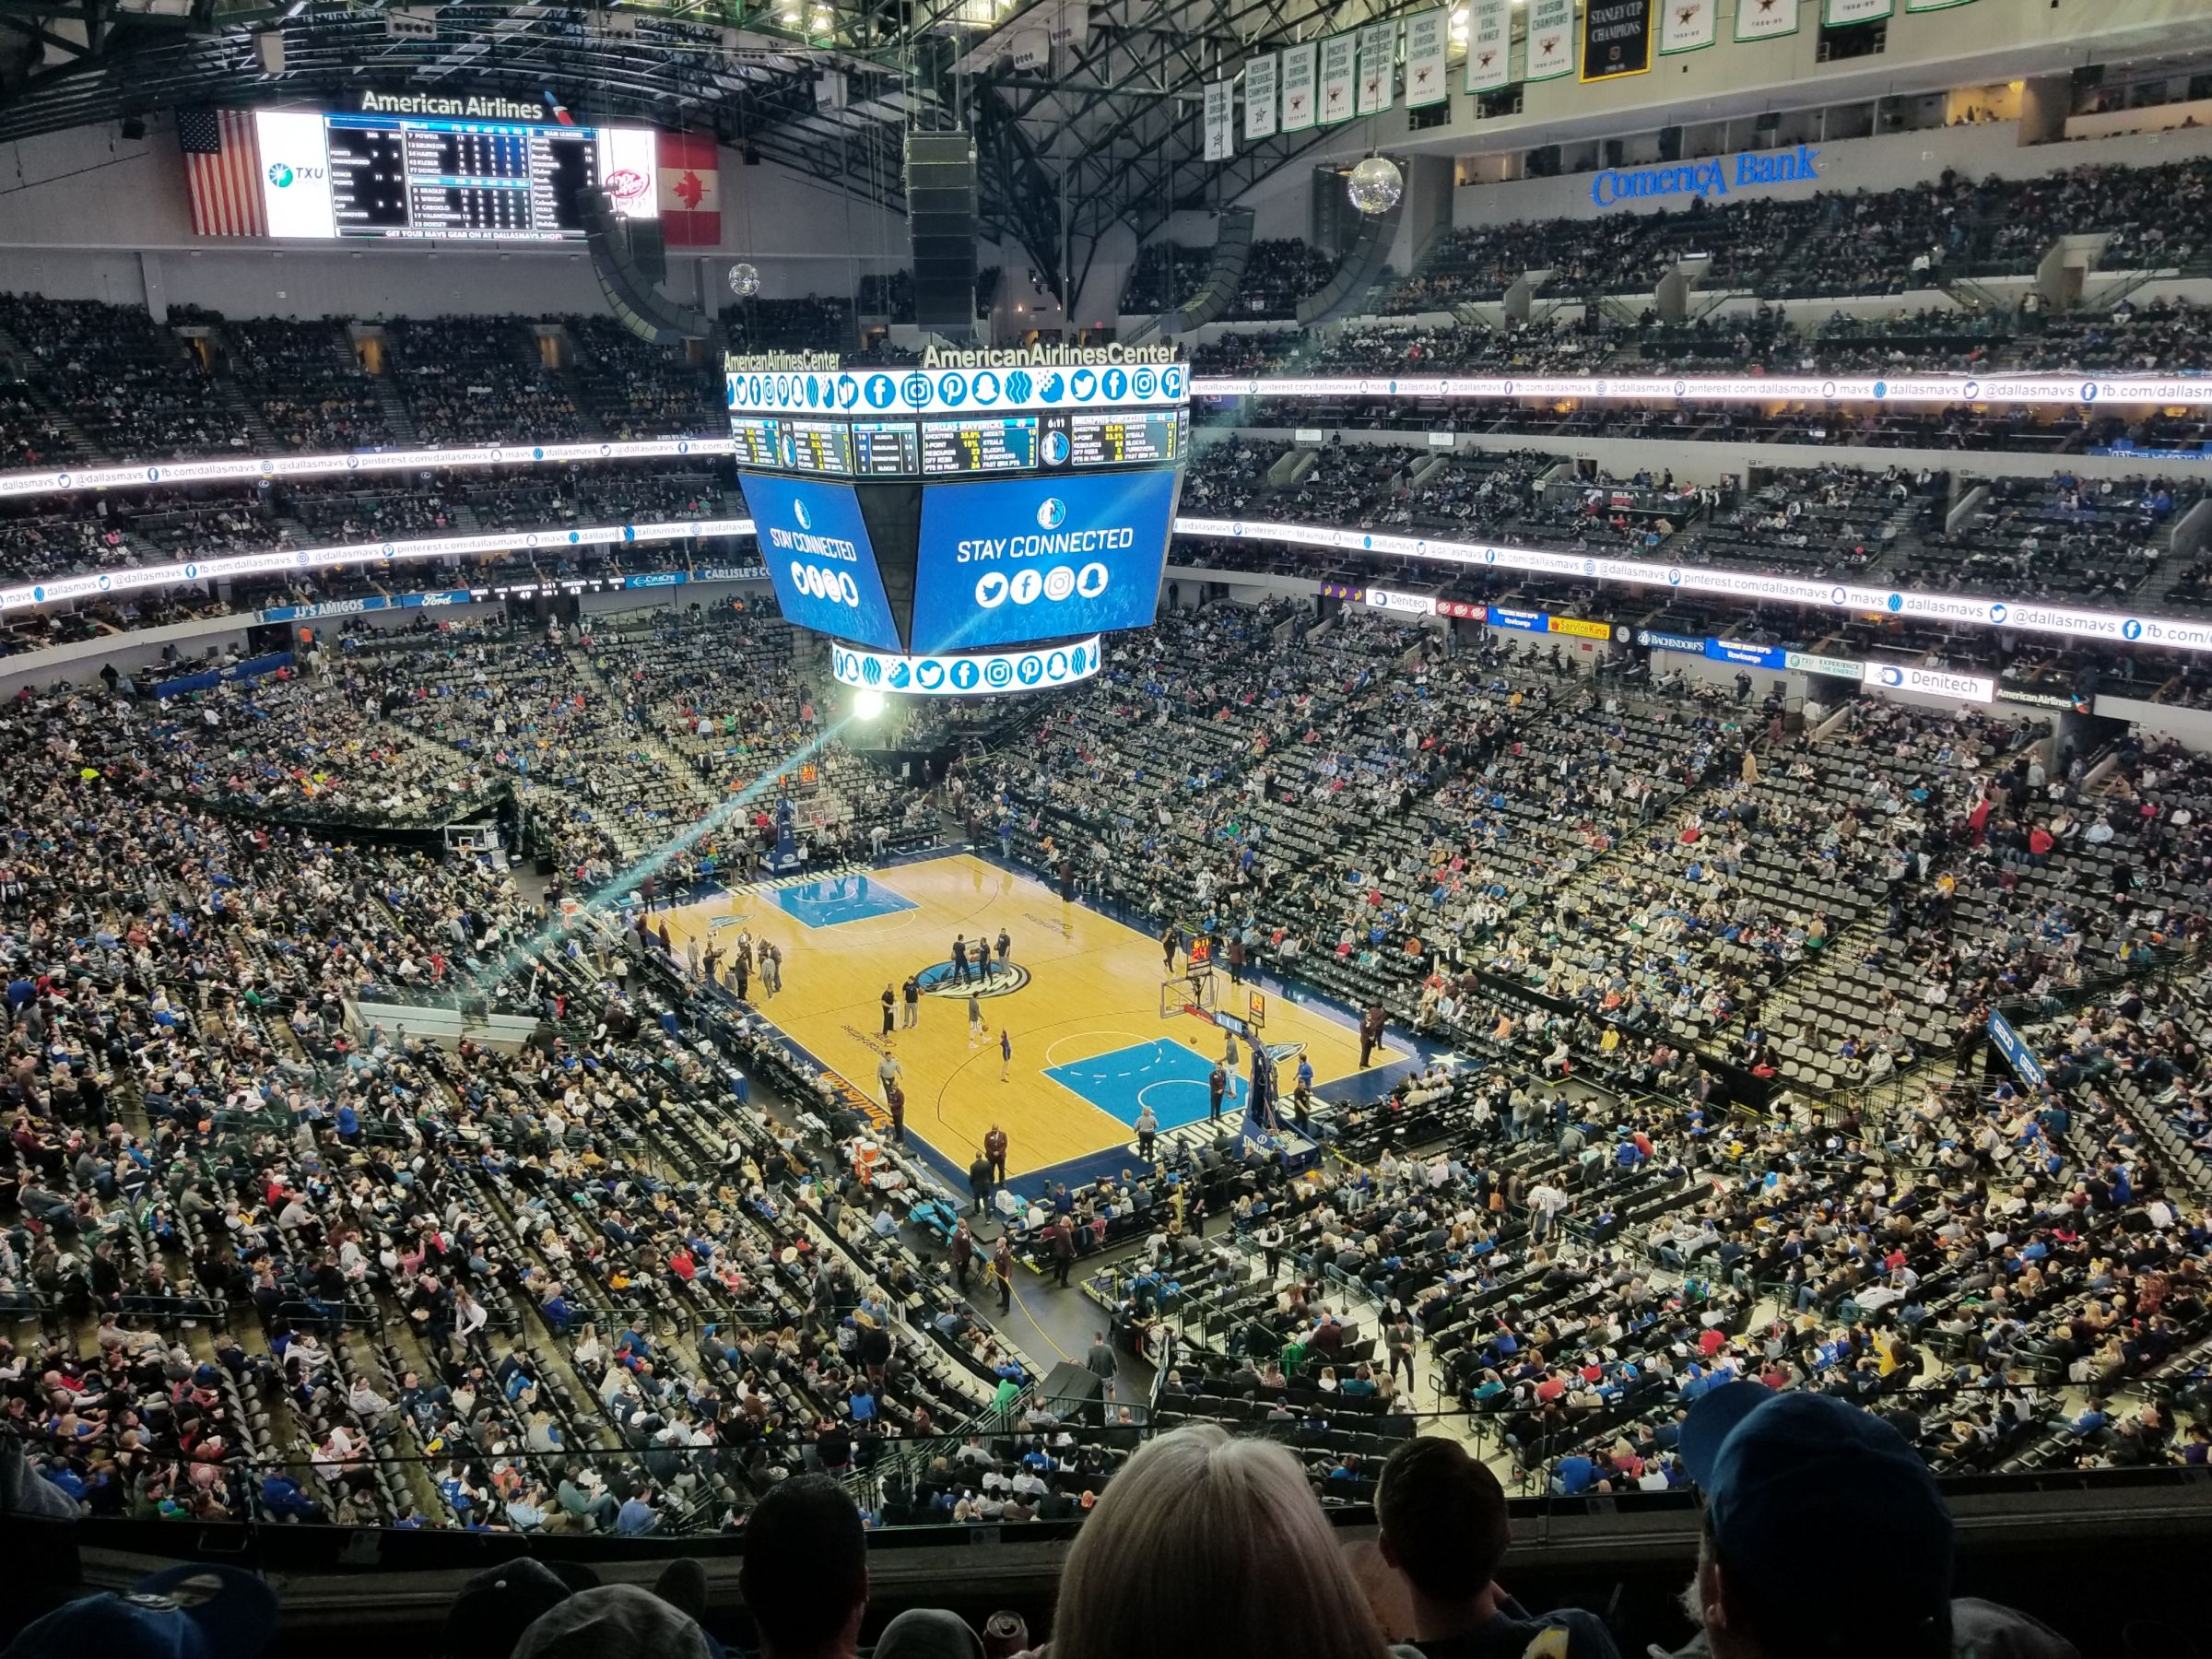 Dallas Mavericks Seat View for American Airlines Center Section 321, Row D, Seat 5